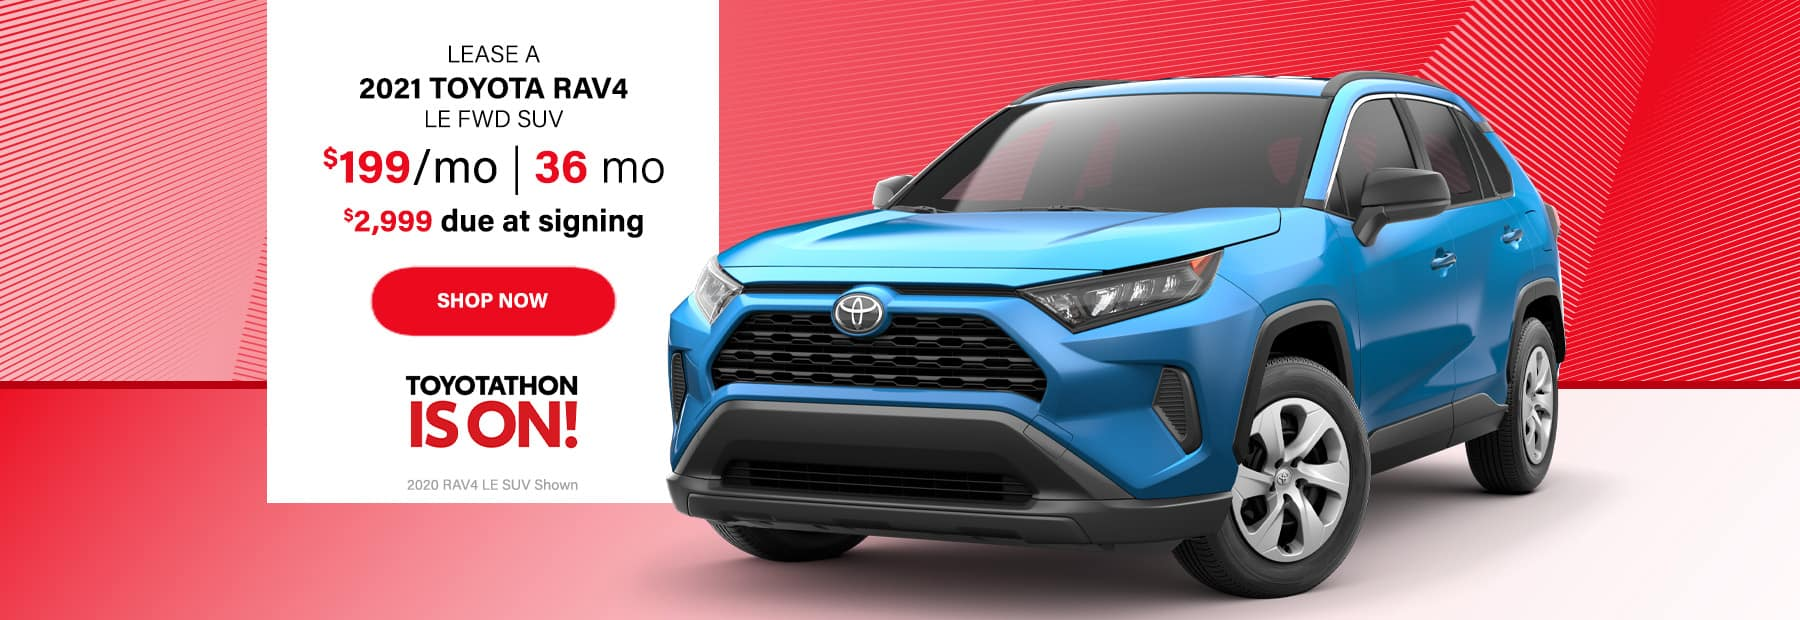 Lease a 2021 Toyota RAV4 LE FWD SUV